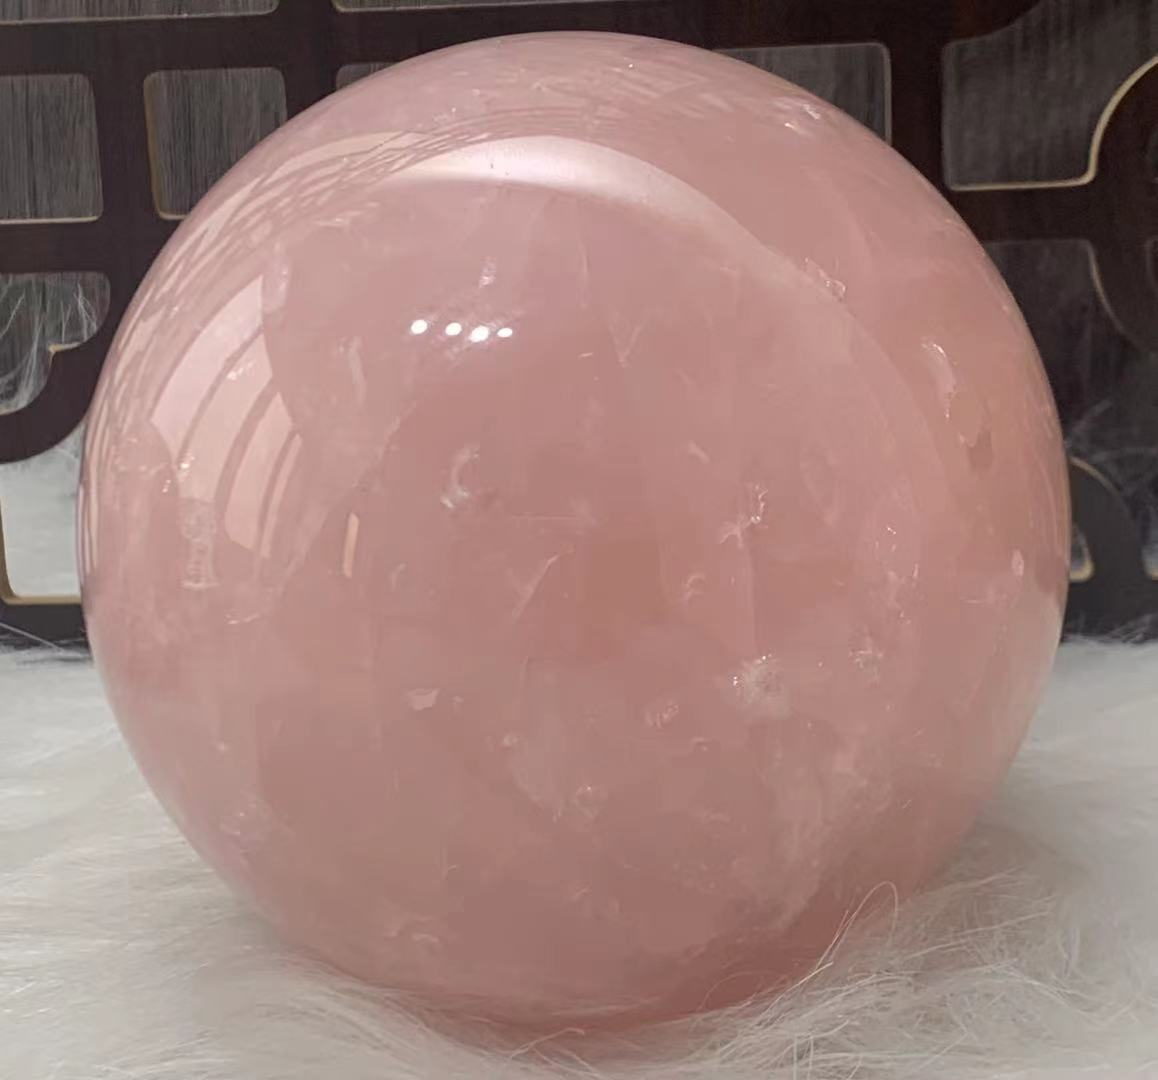 New model 2021natural rose quartz crystal ball, fnatural stone, healing crystal ,home decoration, feng shui, full size 60-150mm